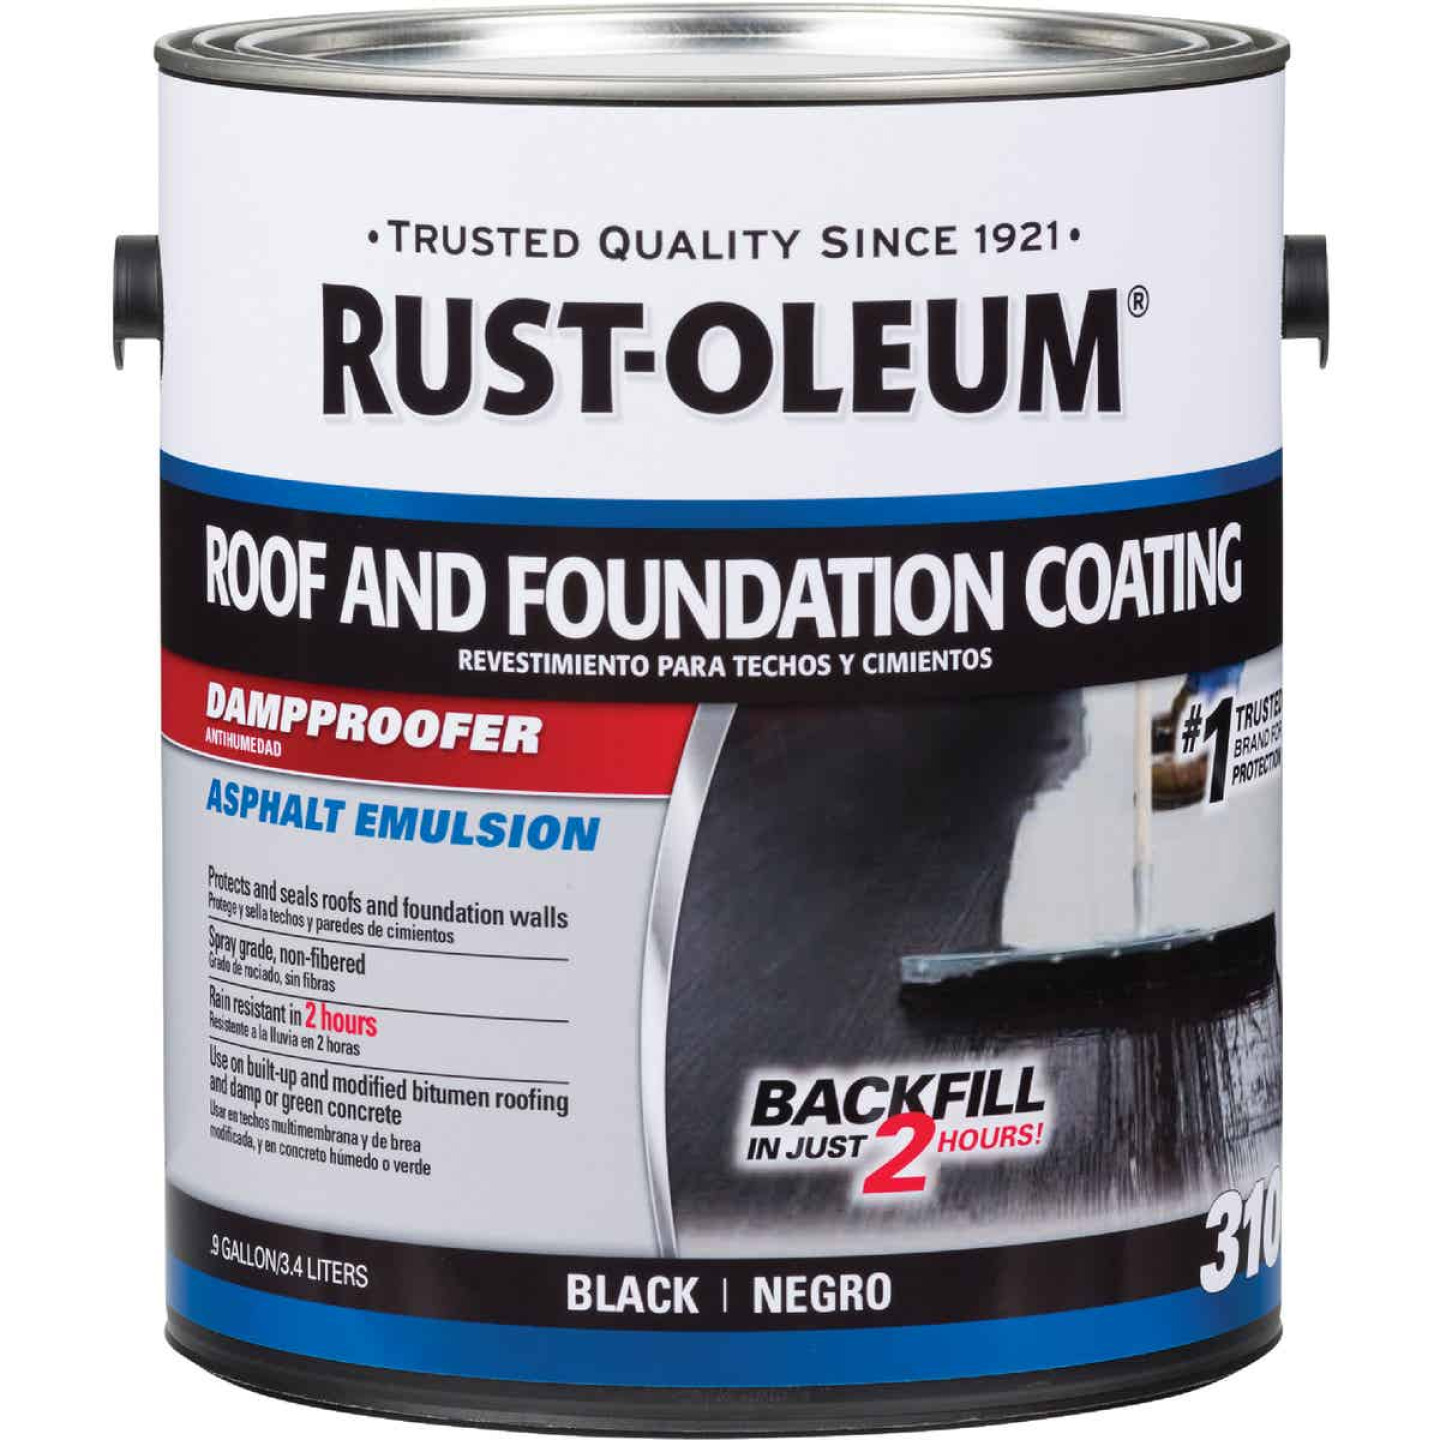 Rust-Oleum 310 1 Gal. Roof and Foundation Coating Image 1